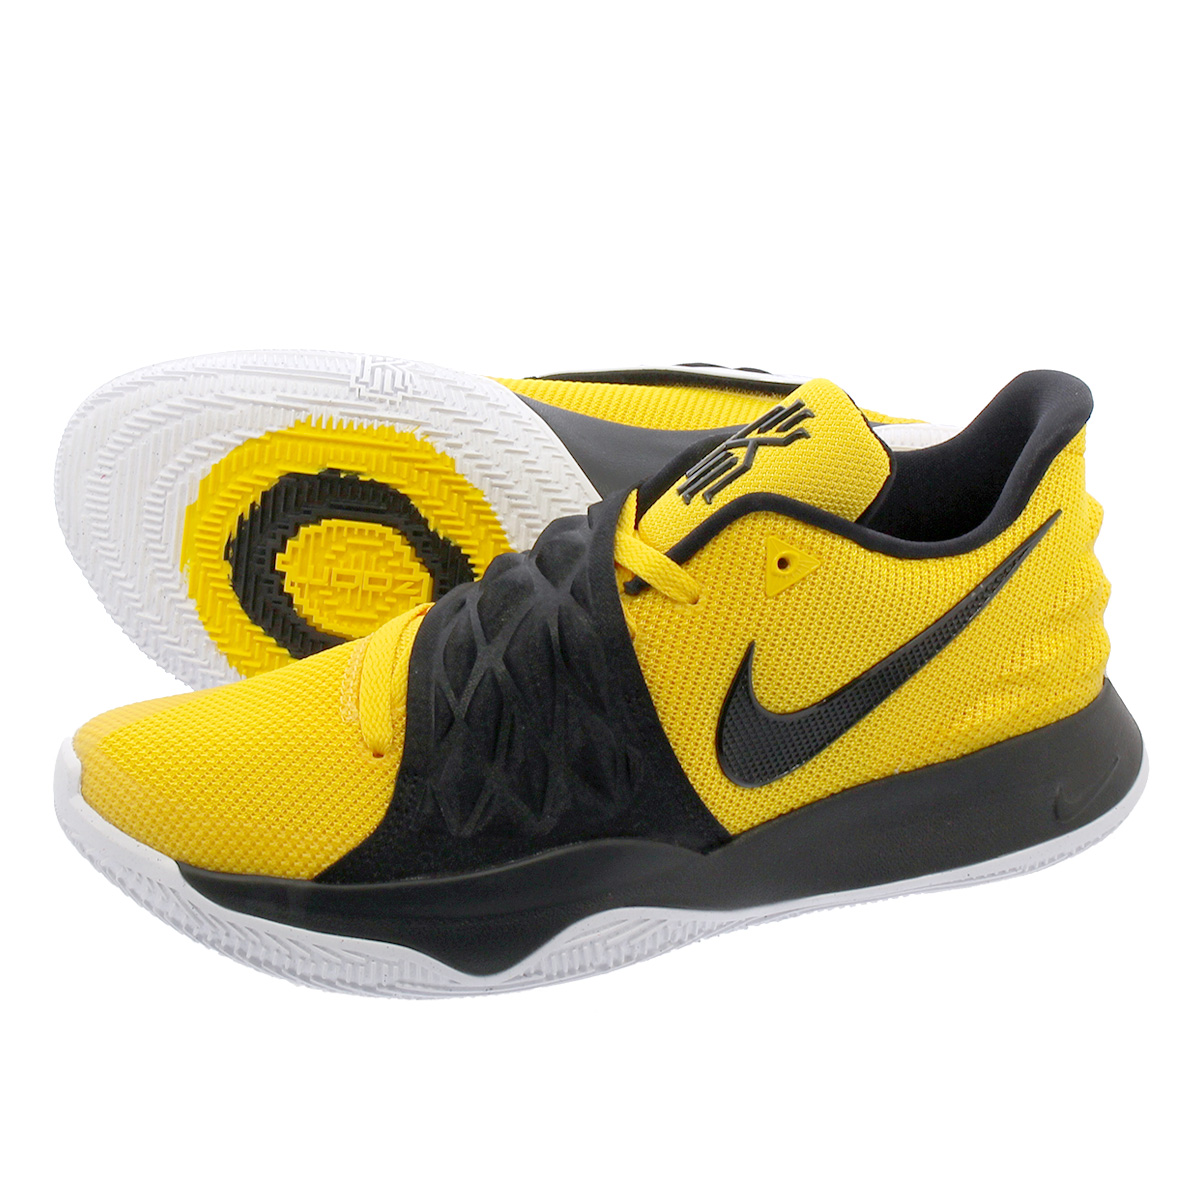 dbca61ec06d925 LOWTEX PLUS  NIKE KYRIE 4 LOW Nike chi Lee 4 low AMARILLO BLACK ao8979-700